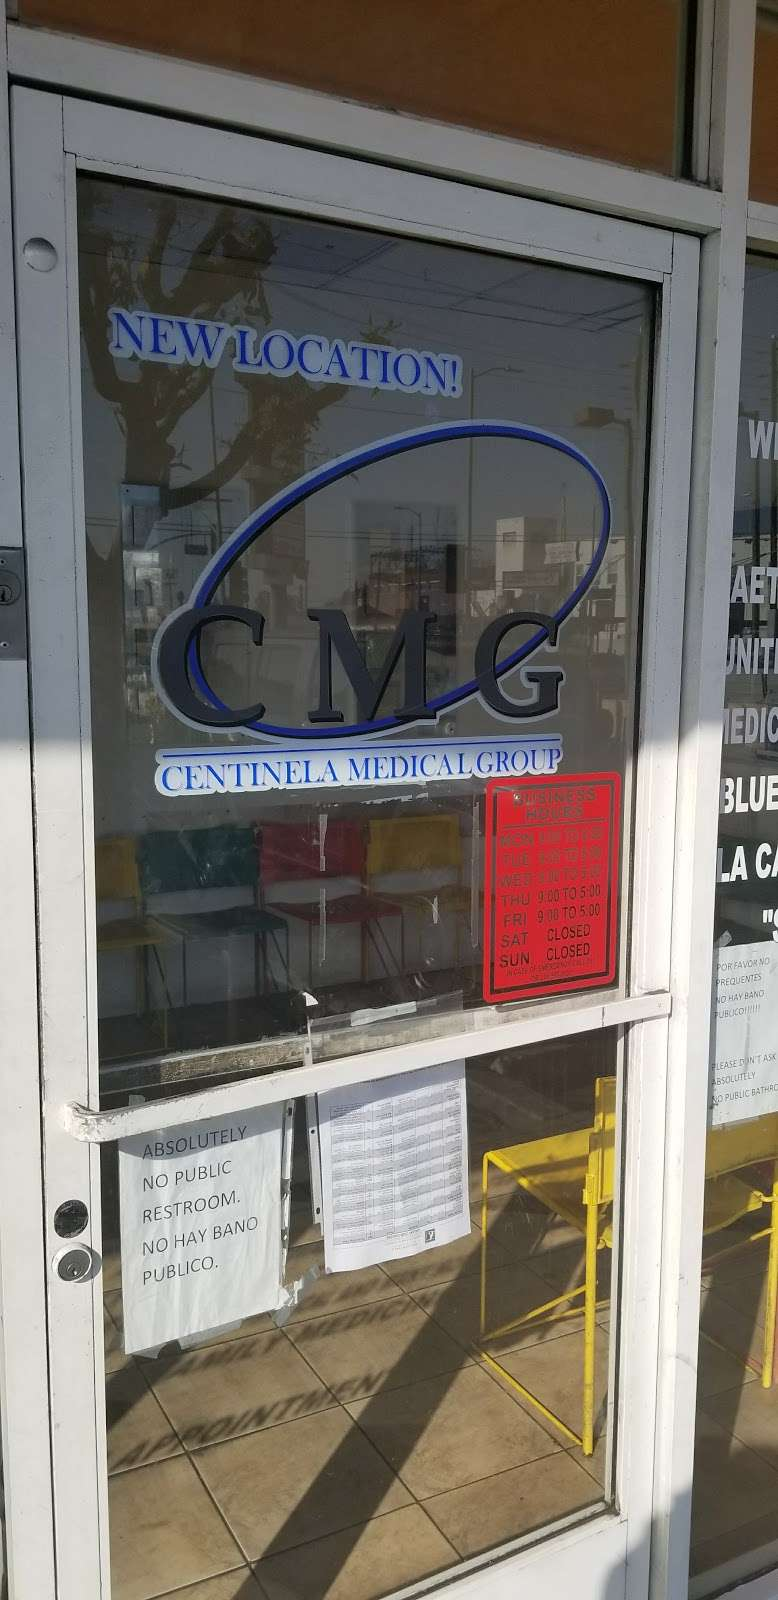 Centinela Medical Group - health  | Photo 3 of 4 | Address: 4405 S Main St, Los Angeles, CA 90037, USA | Phone: (323) 231-0659